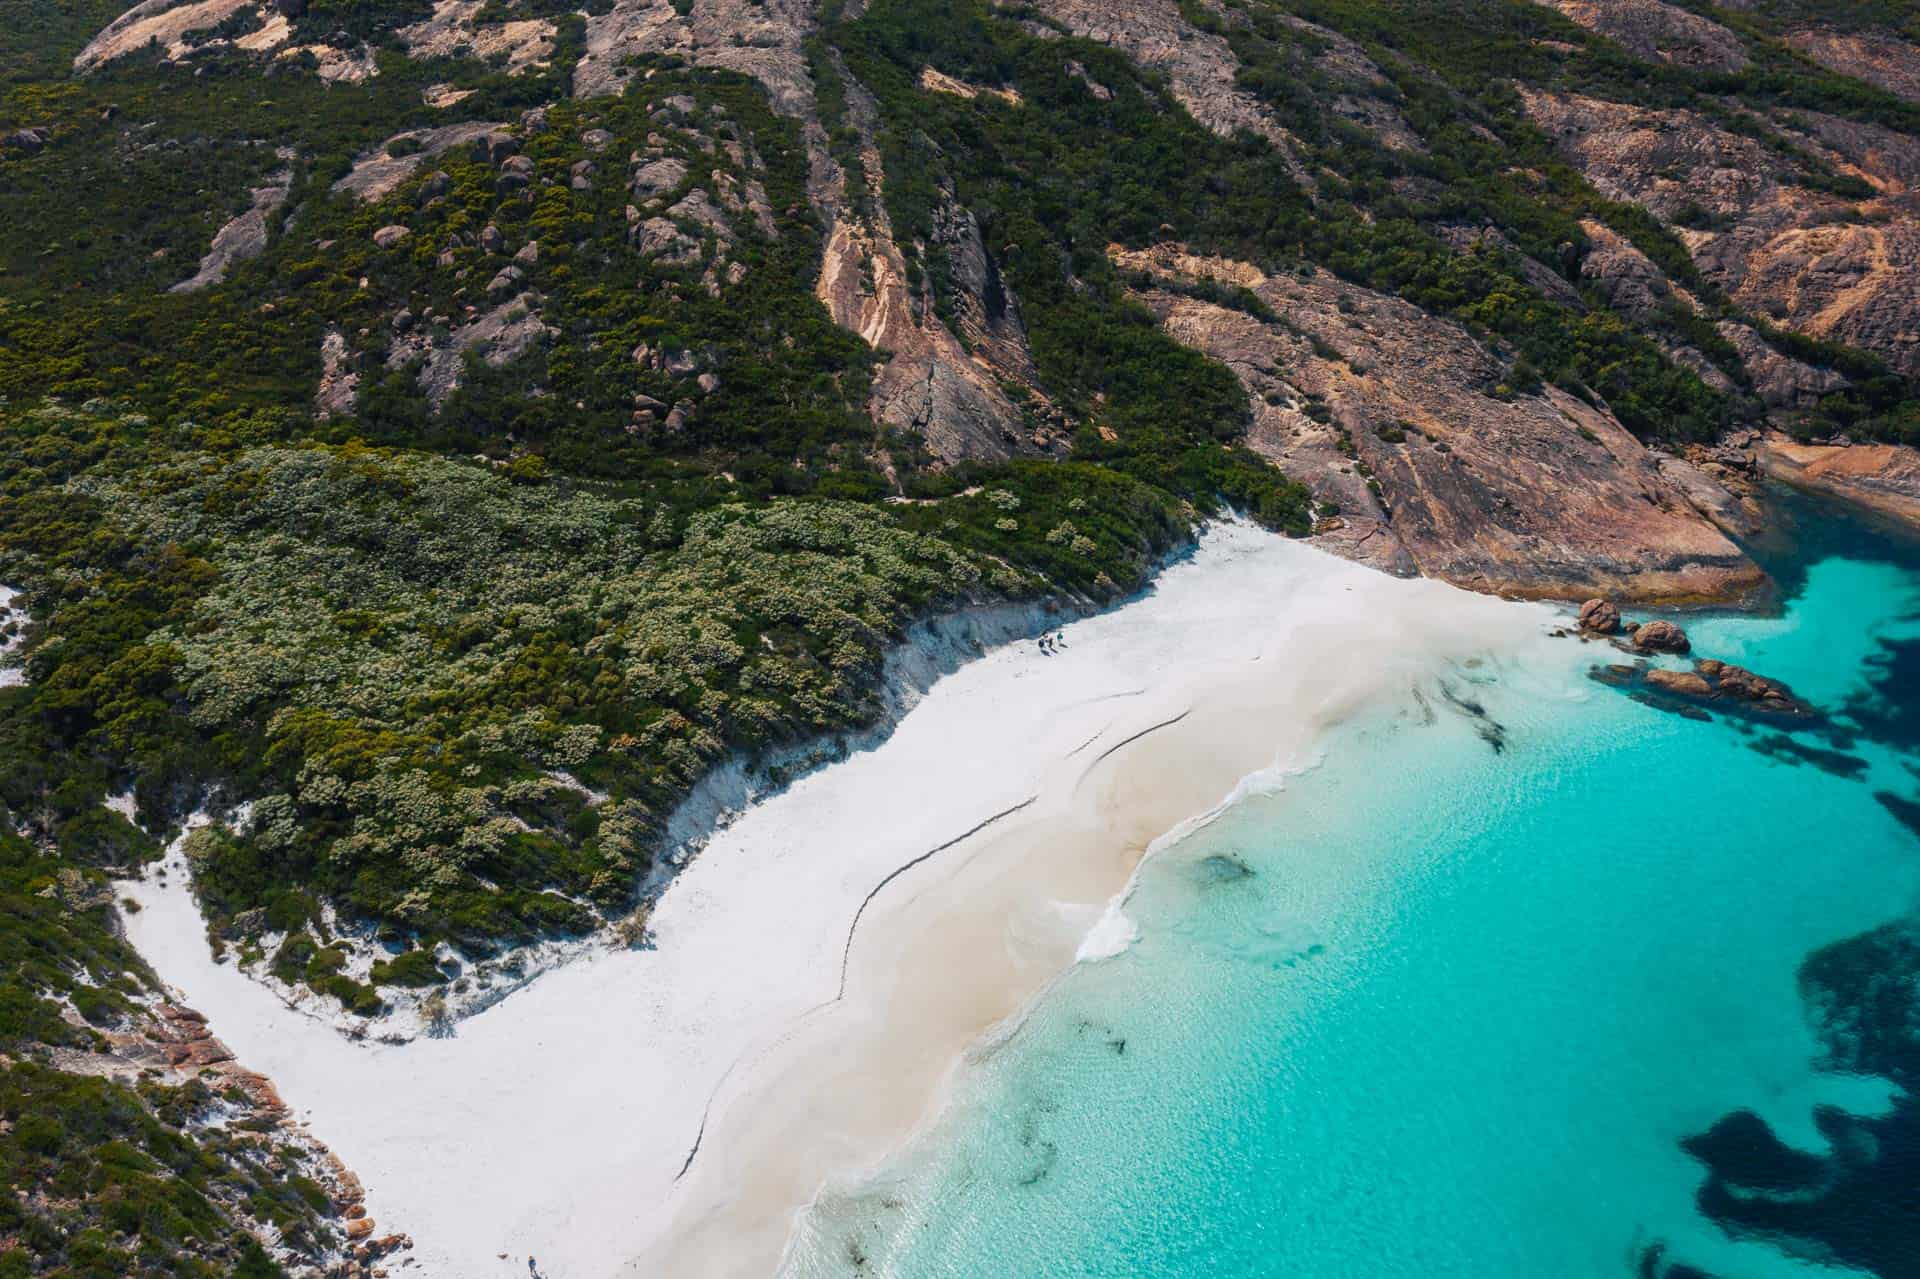 things to do in esperance, what to do in esperance, esperance things to do, esperance attractions, beaches in esperance, little hellfire bay, little hellfire bay esperance